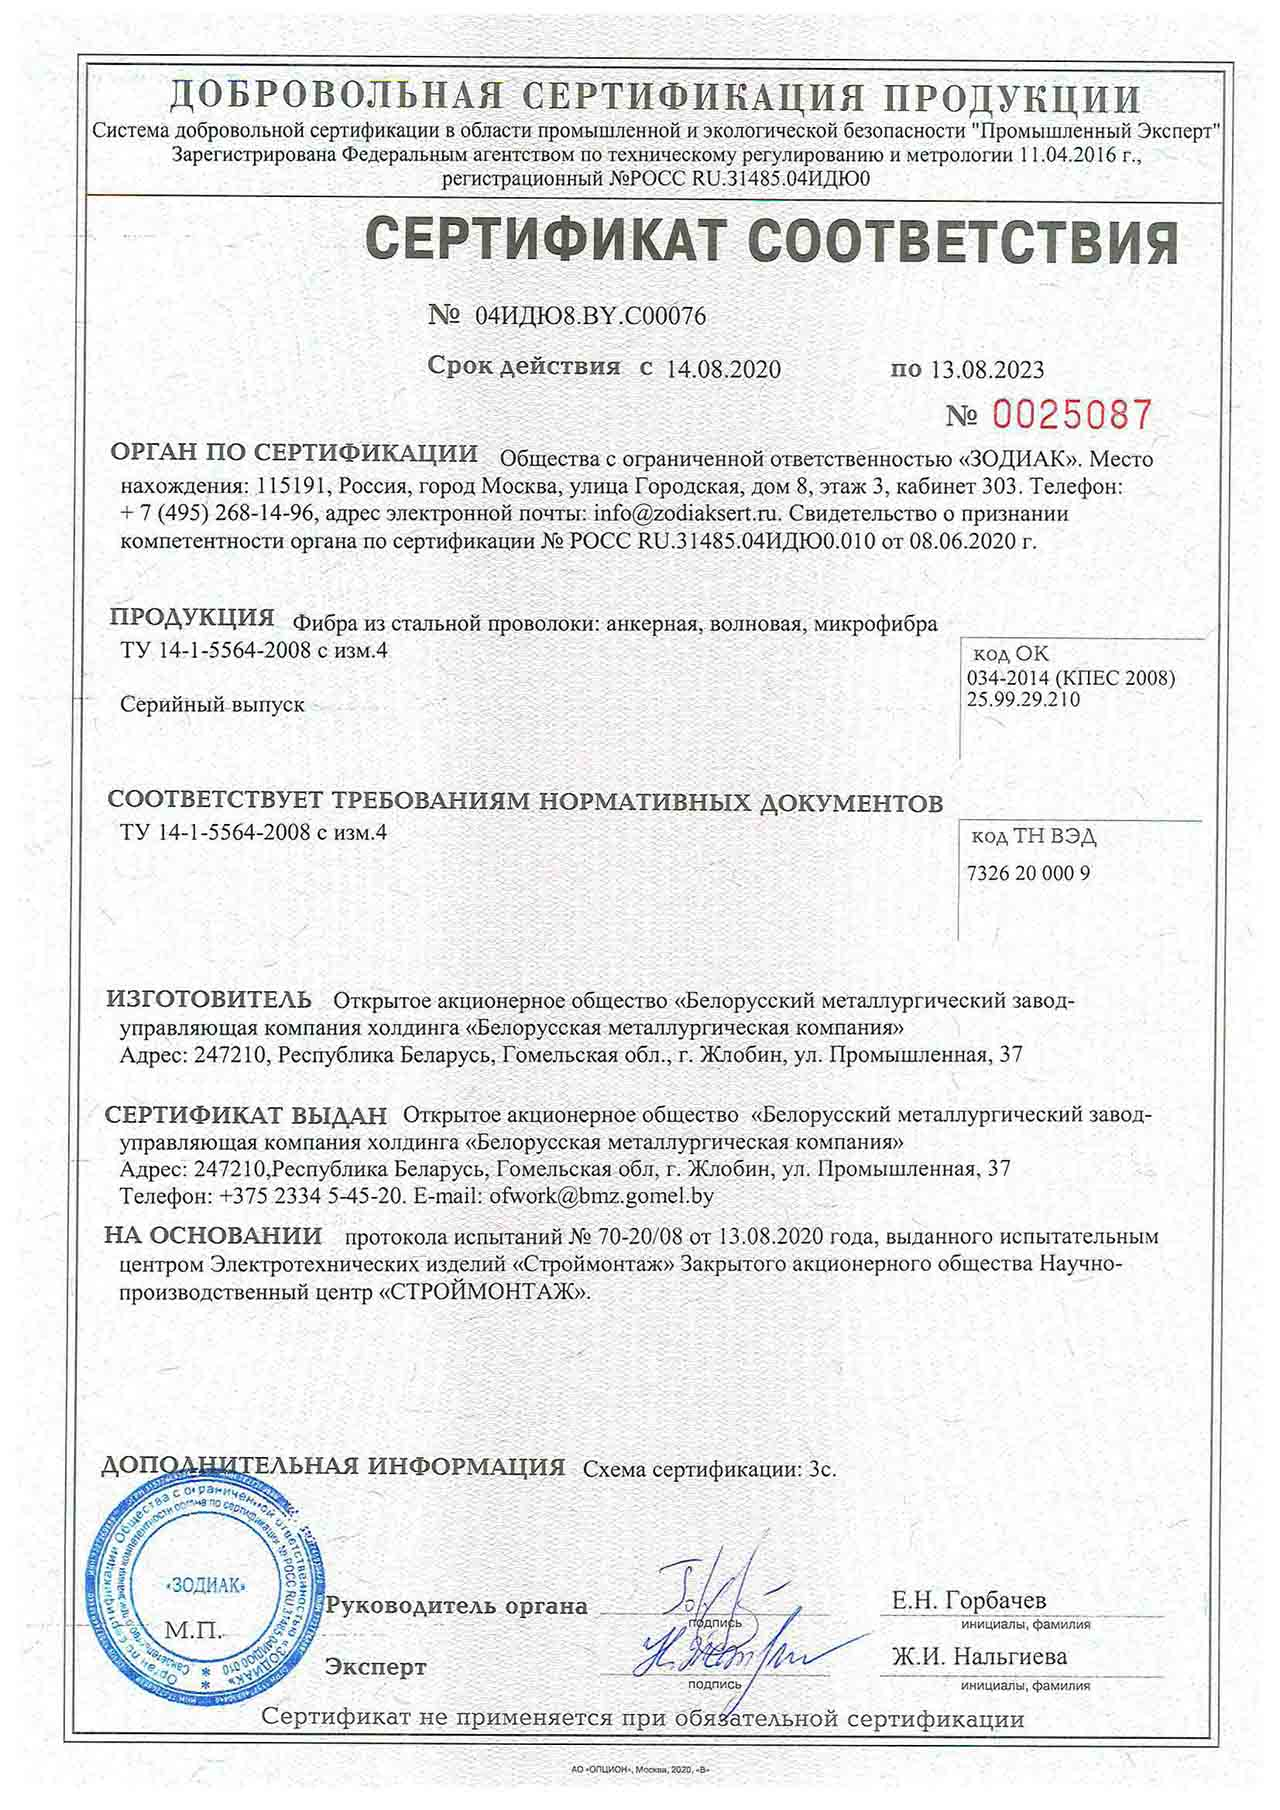 Conformity certificate No. 04IDYU8.BY.C00076 SERCONS / ZODIAC Ltd (RF) for the production of fiber from steel wire: anchor, wavy, microfiber according to the requirements of TU 14-1-5564-2008 with amendment 4